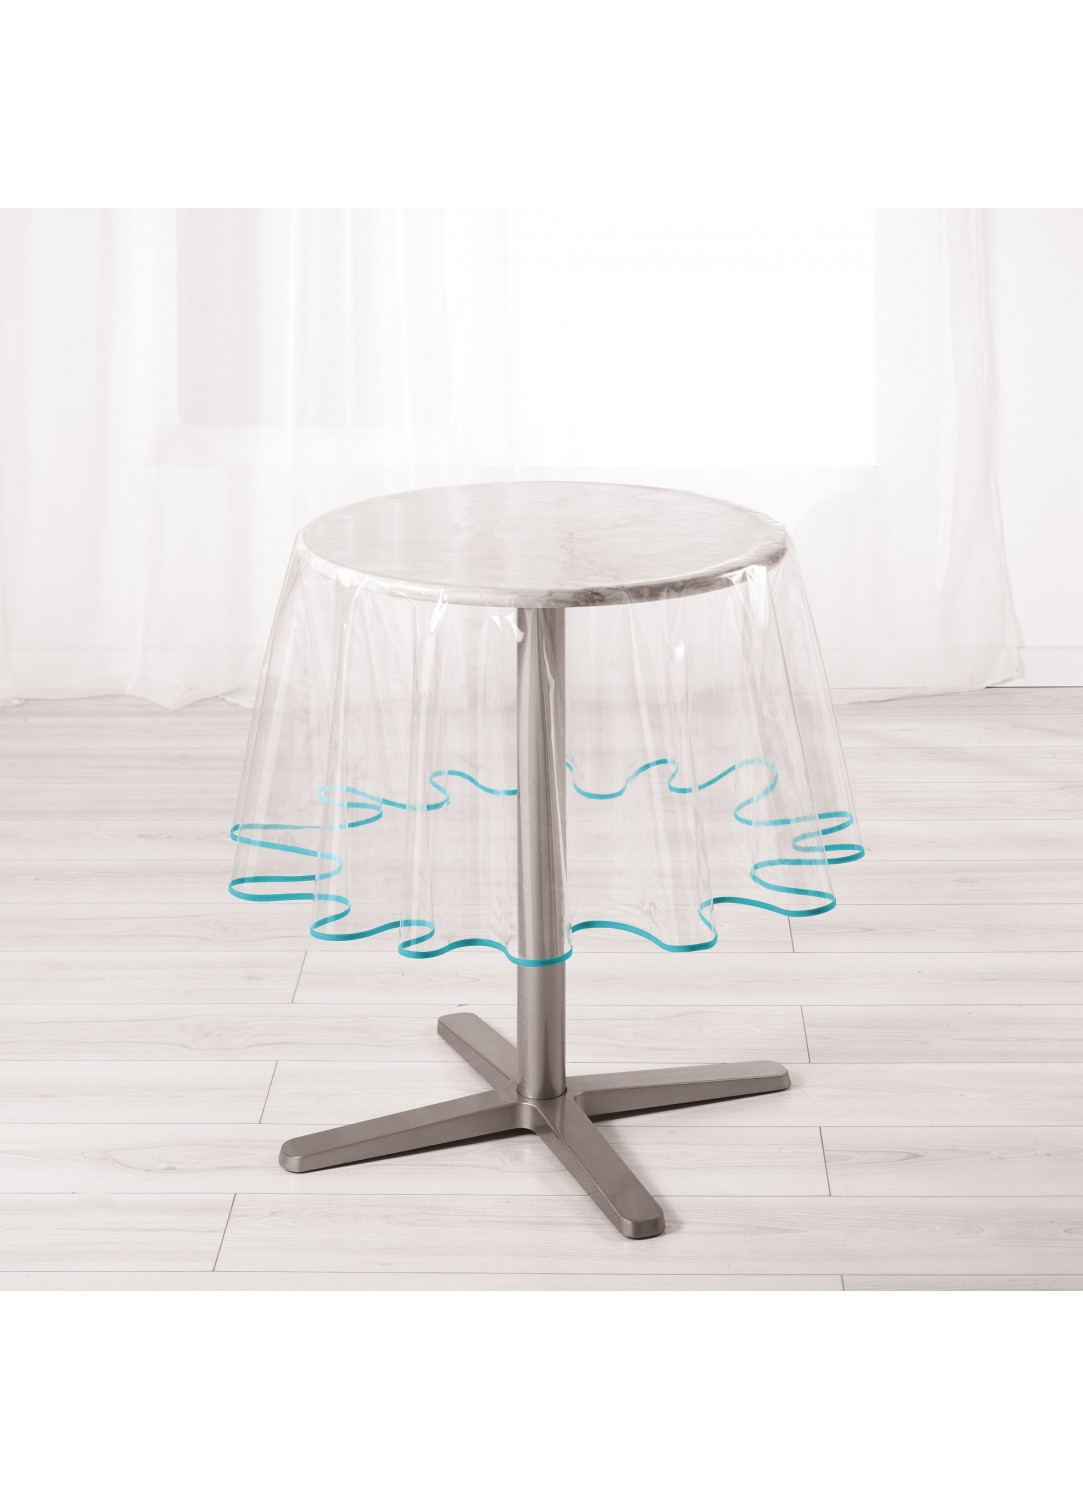 nappe ronde pvc transparent avec biais color aqua menthe blanc rouge framboise. Black Bedroom Furniture Sets. Home Design Ideas